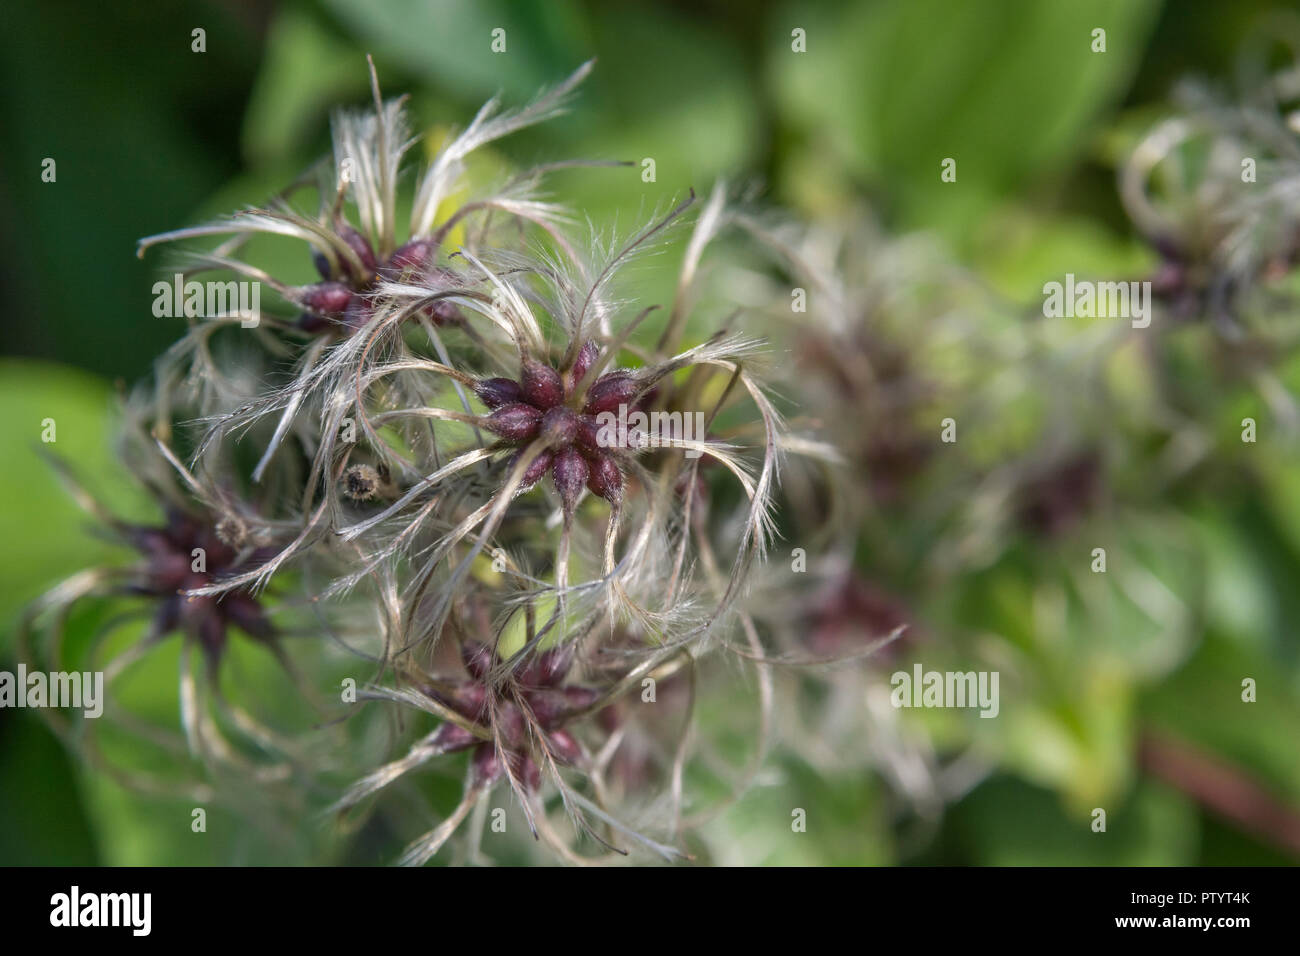 Traveller's Joy / Clematis vitalba - Wild Clematis - in seeding mode. Parts of C. vitalba used as a medicinal plant in herbal remedies. - Stock Image